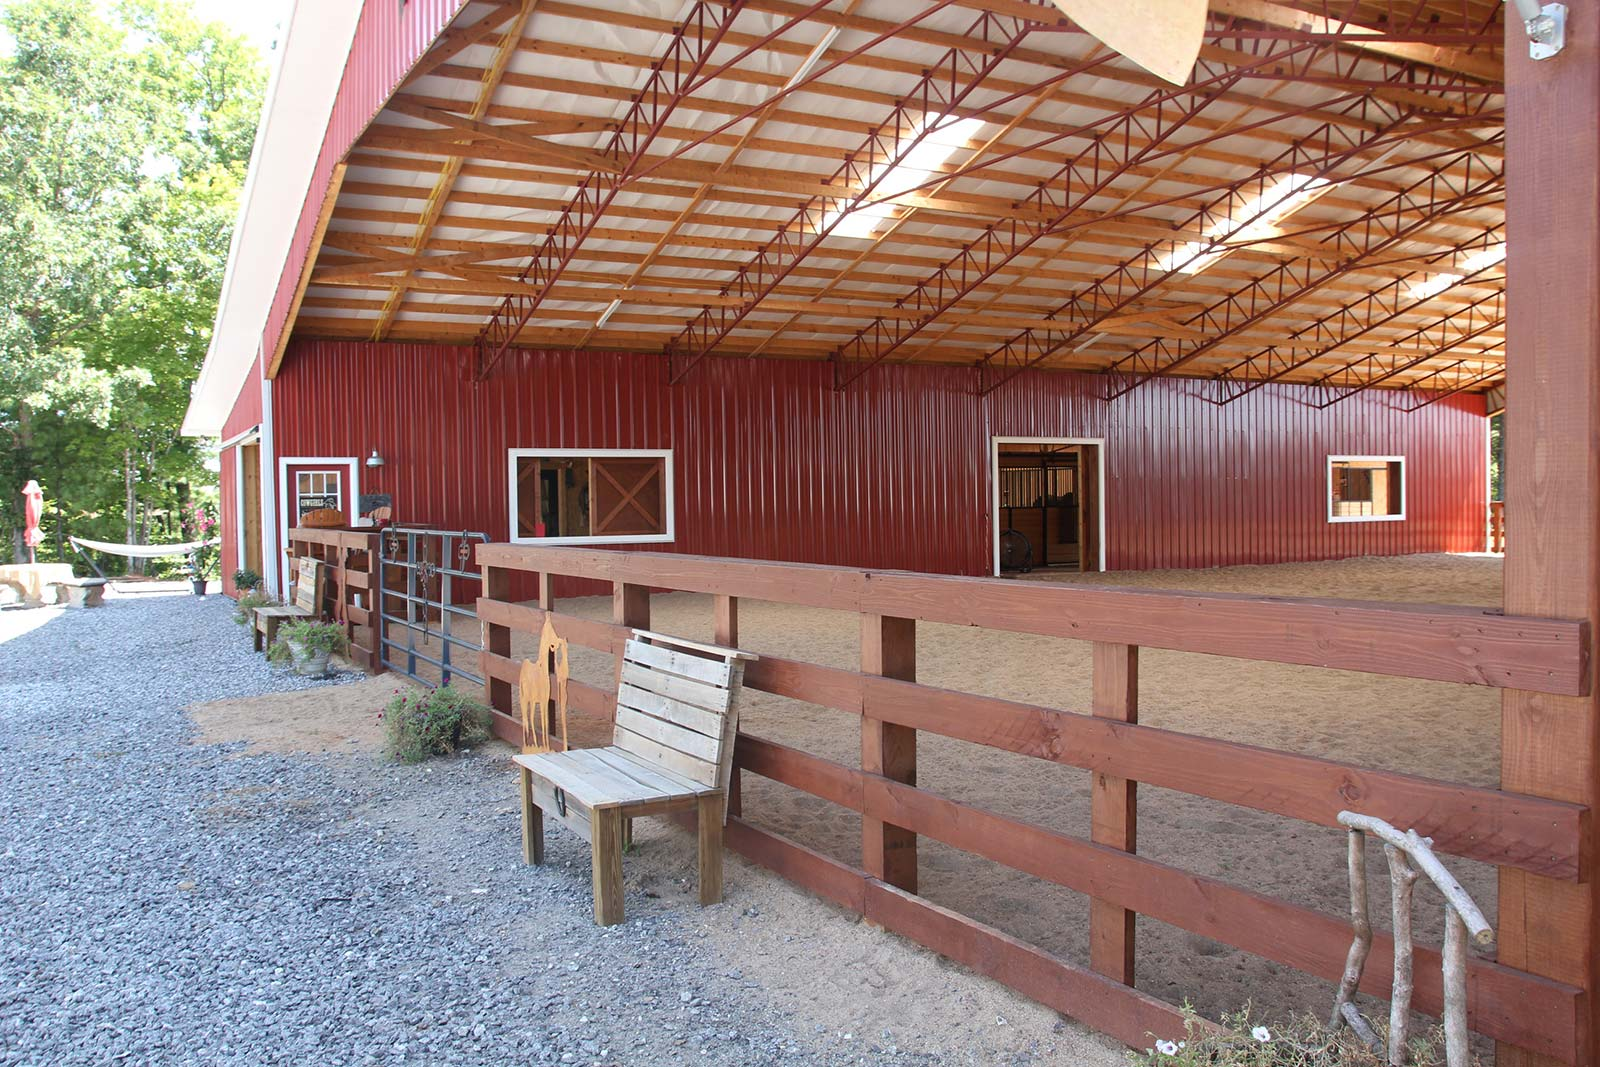 Riding arena incorporated into equestrian facility